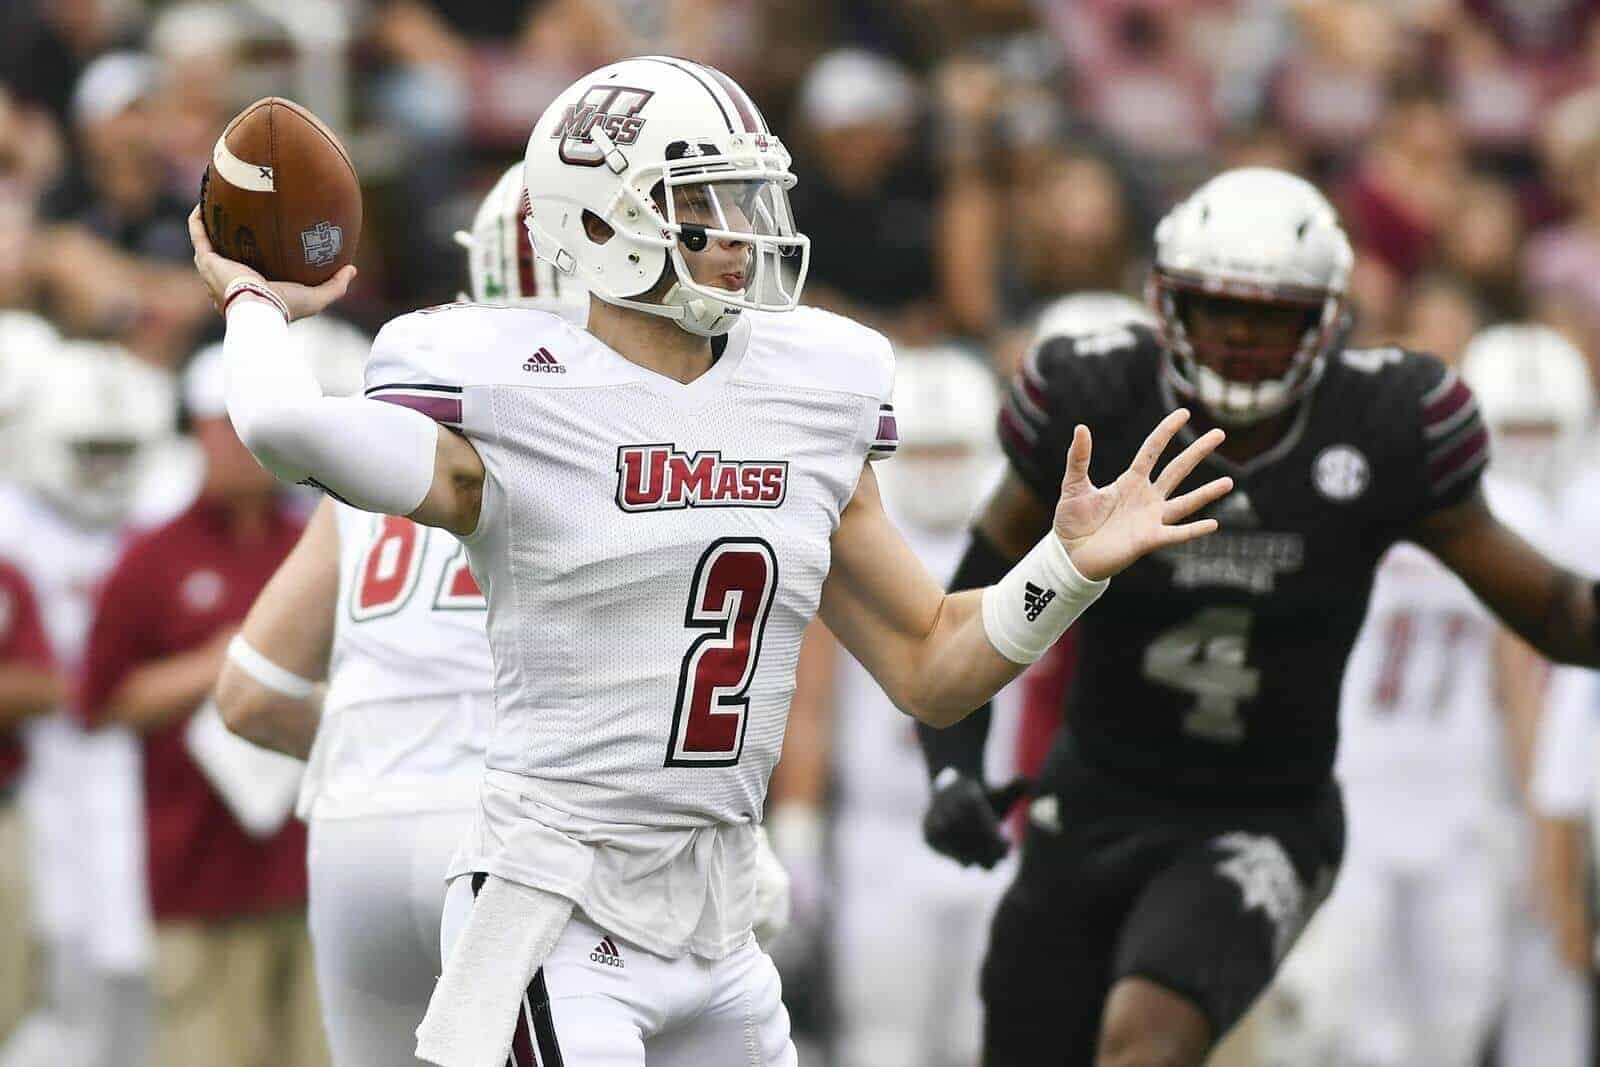 College Football Schedule: UMass